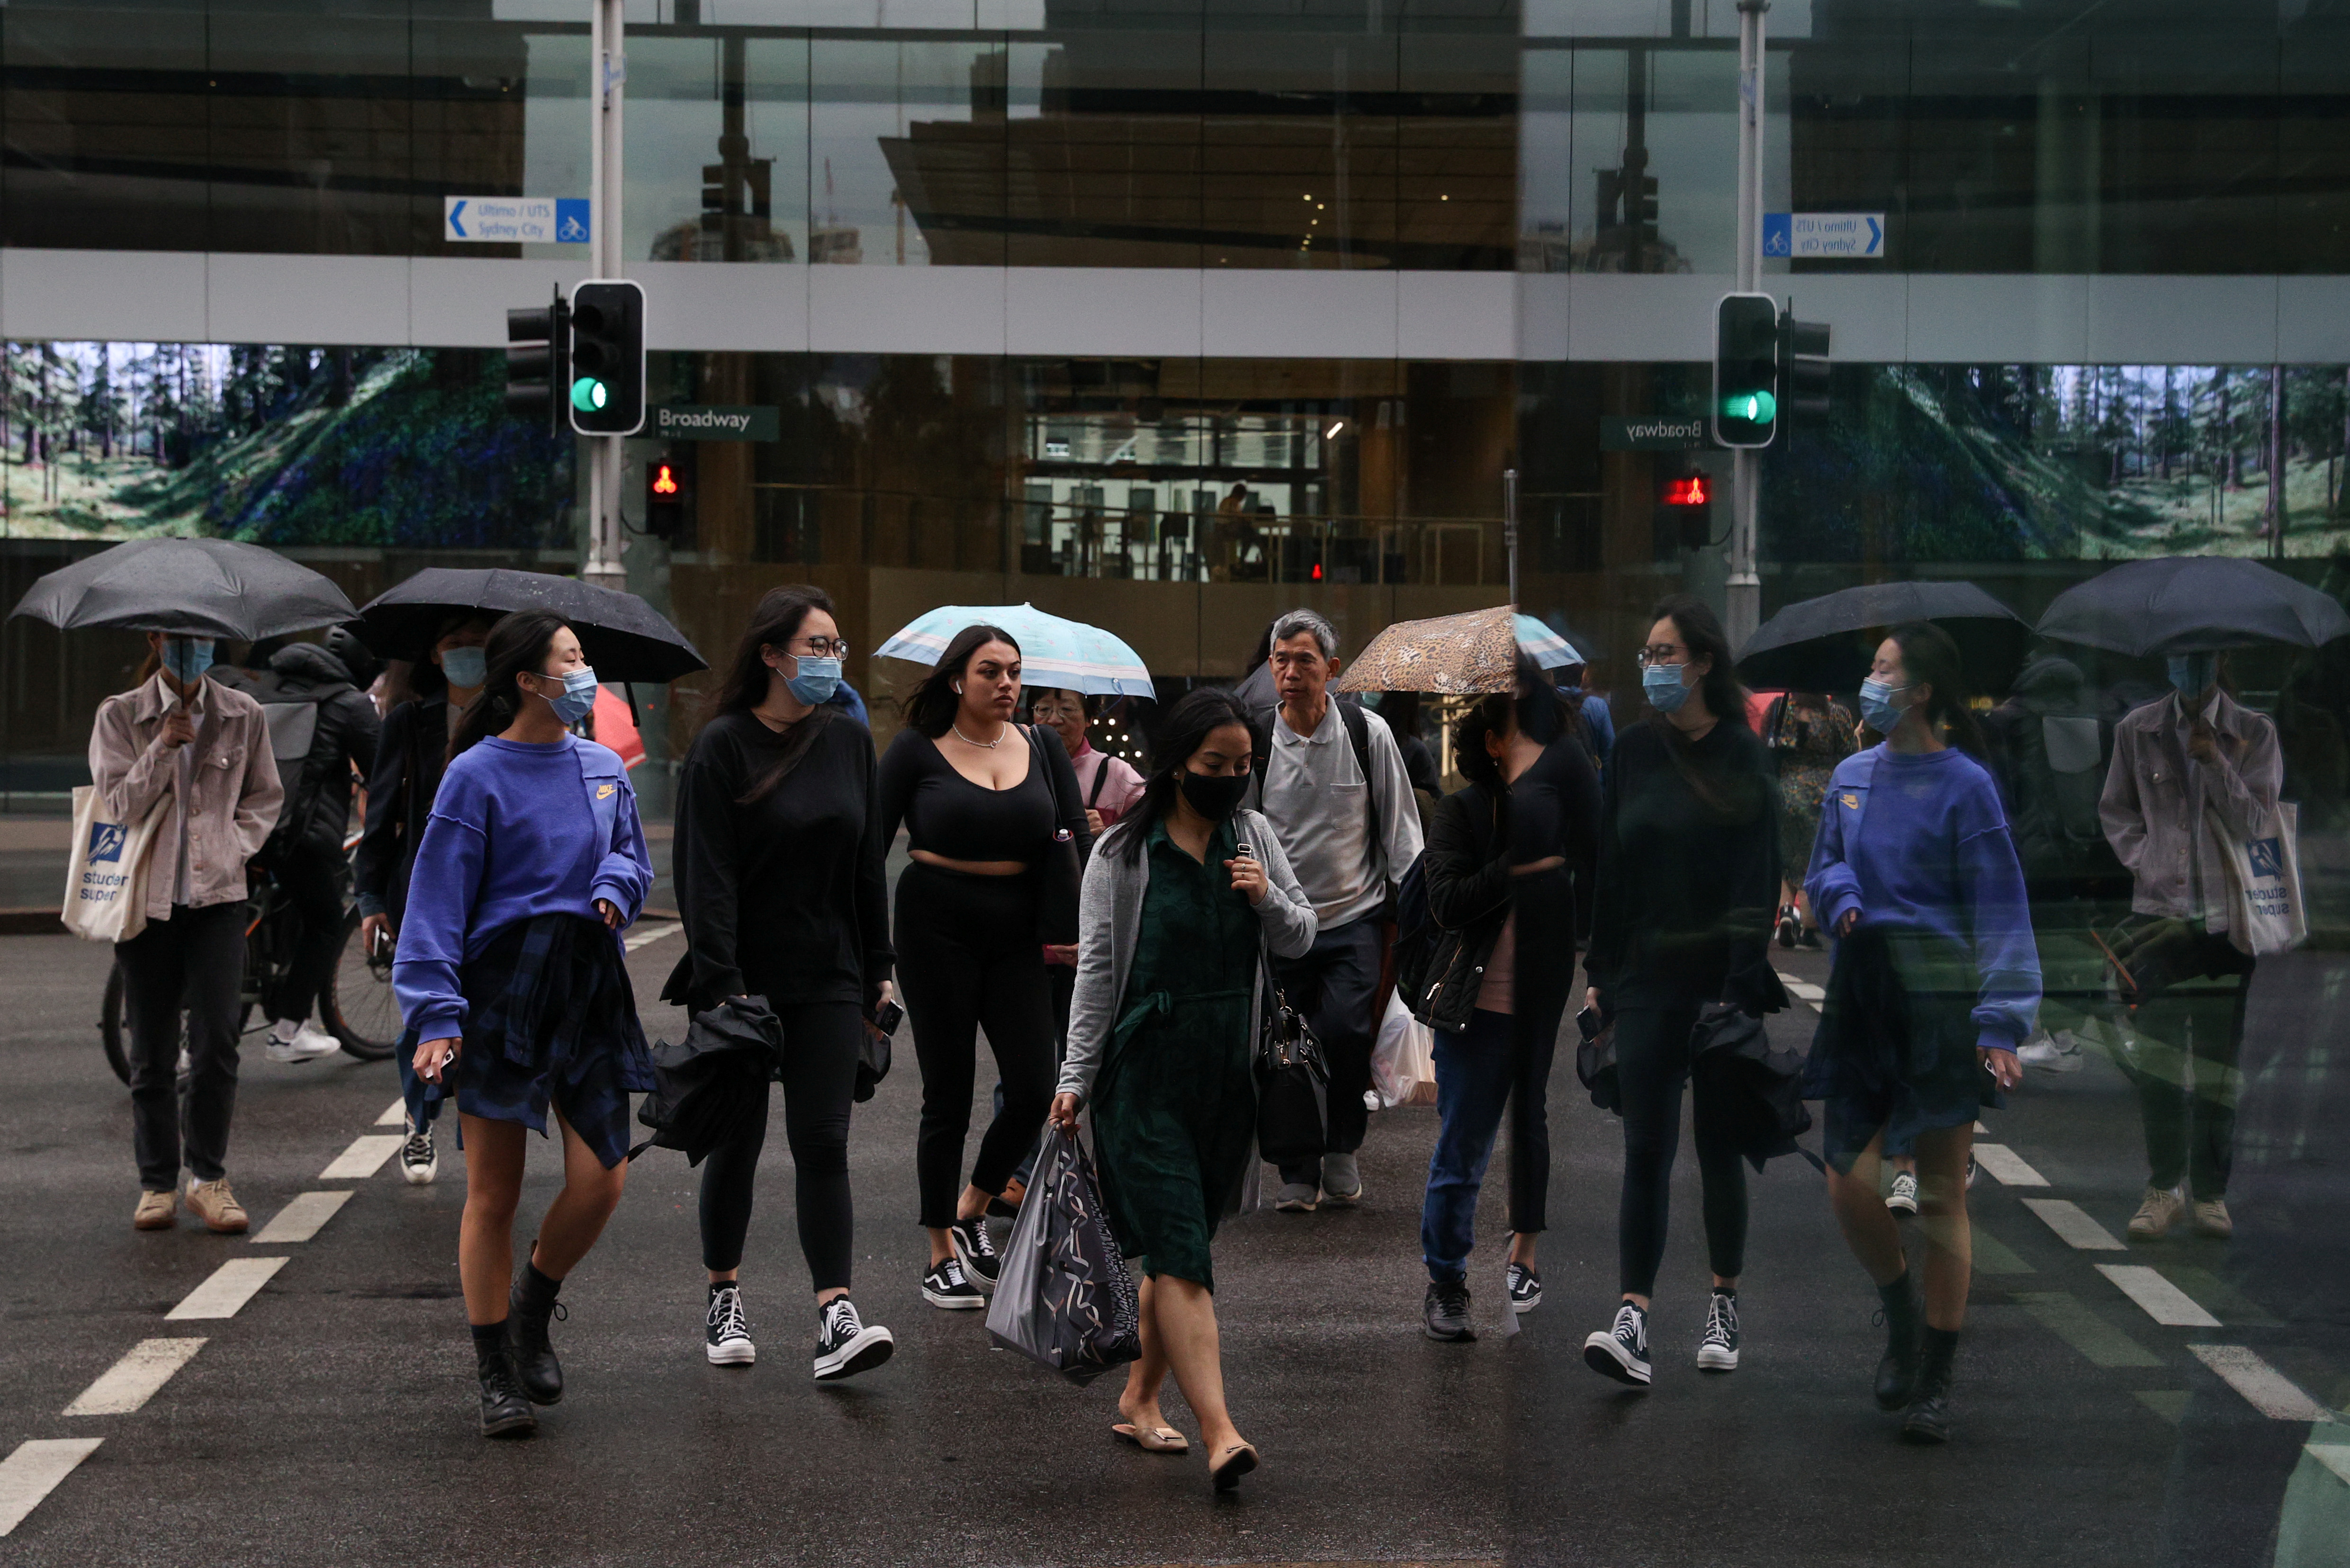 People walk through the city centre as the state of New South Wales continues to report relatively low numbers for new daily cases of the coronavirus disease (COVID-19), in Sydney, Australia, September 4, 2020. REUTERS/Loren Elliott